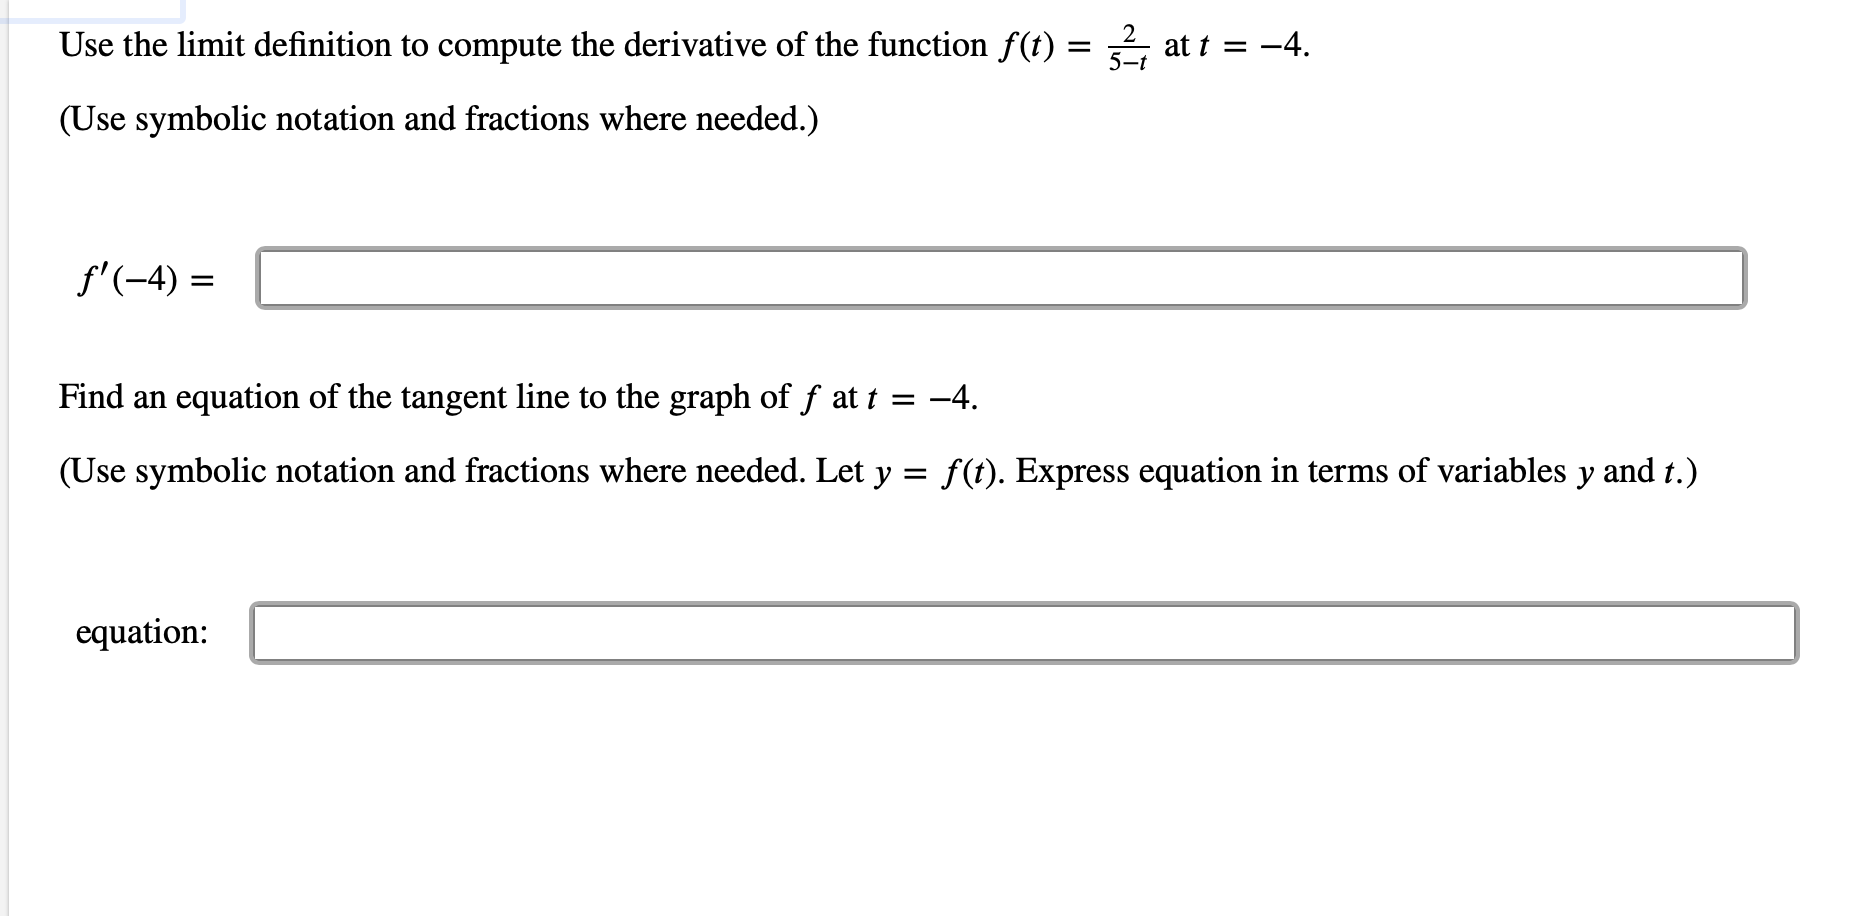 Use the limit definition to compute the derivative of the function f(t): 5-t at t -4 = _ (Use symbolic notation and fractions where needed.) f'-4) Find an equation of the tangent line to the graph of f at t = -4. (Use symbolic notation and fractions where needed. Let y = f(t). Express equation in terms of variables y and t.) equation: